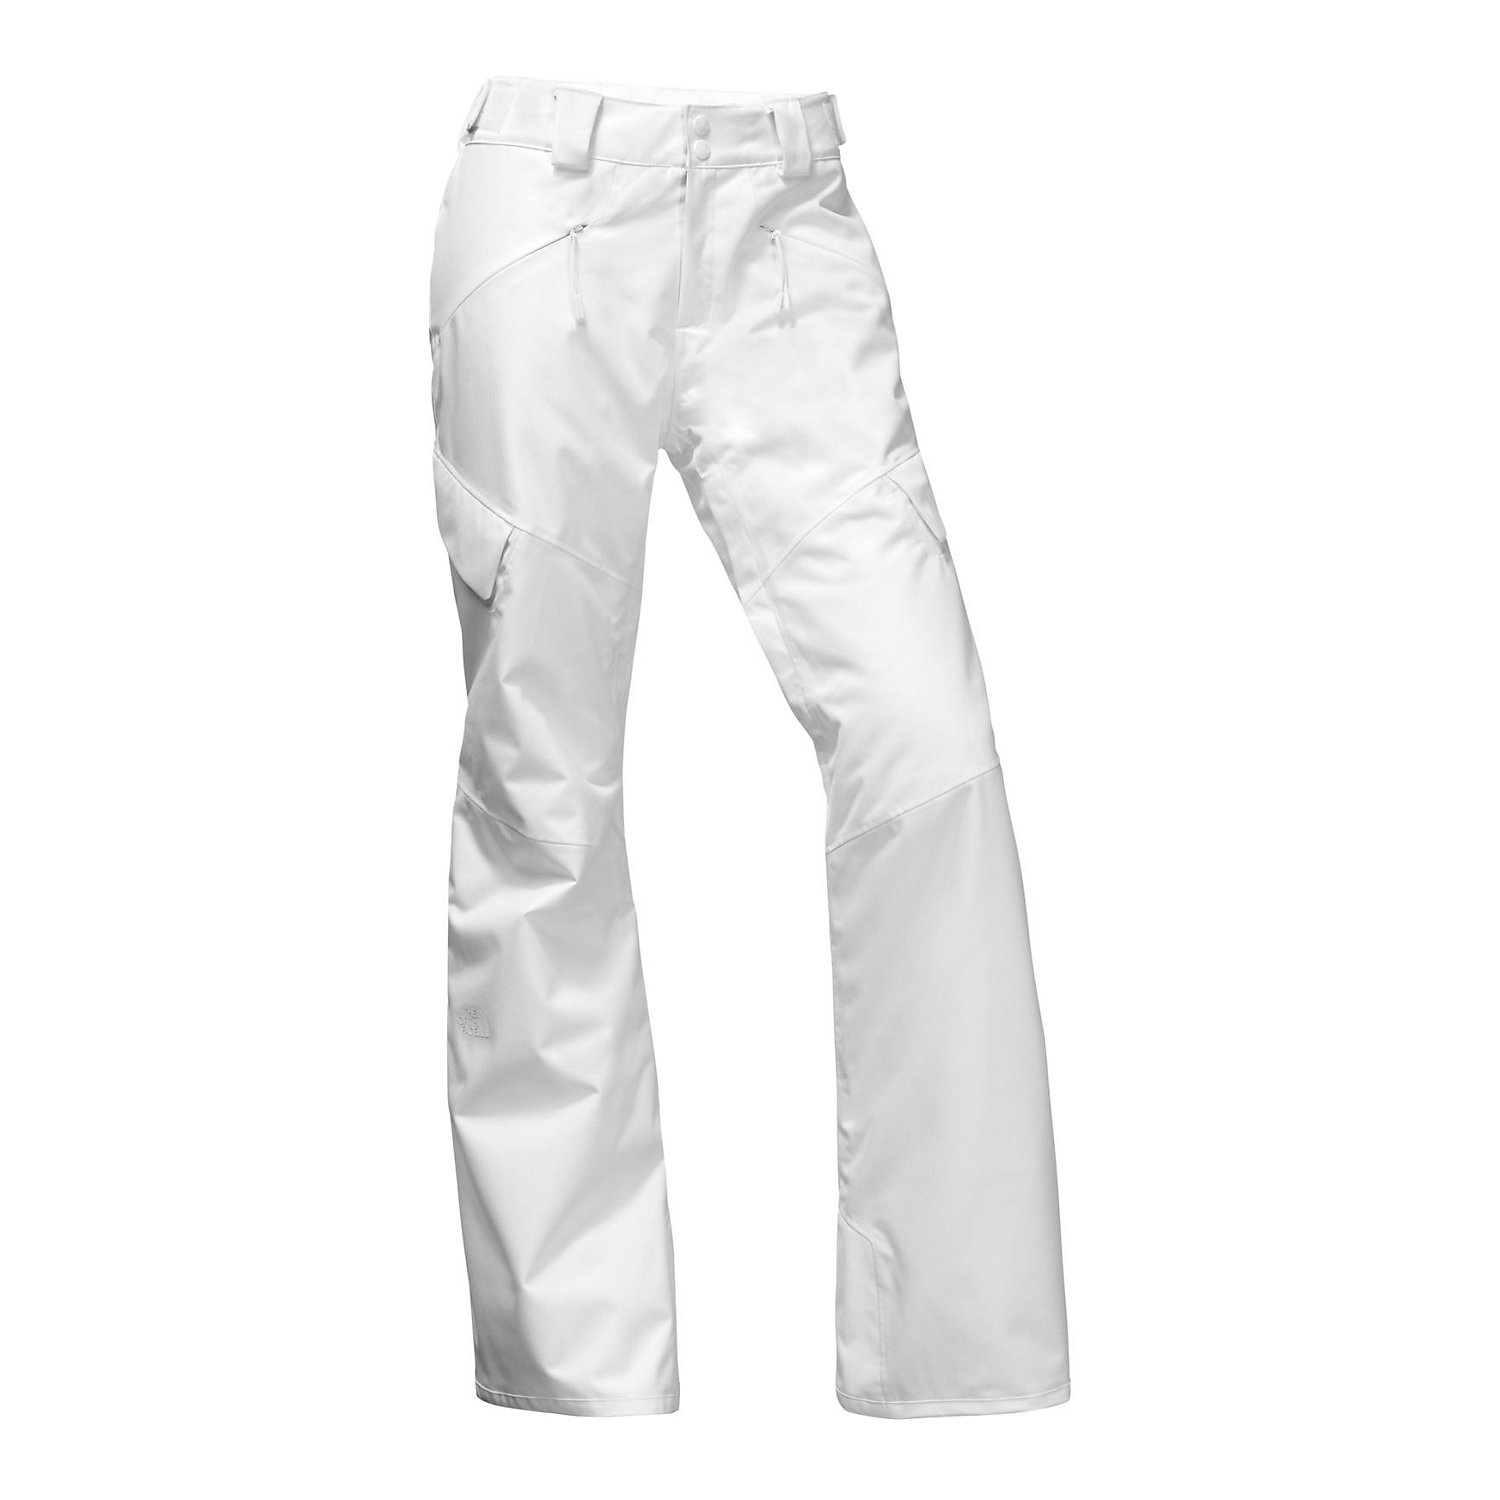 81ae8c421 The North Face Women's Gatekeeper Pant